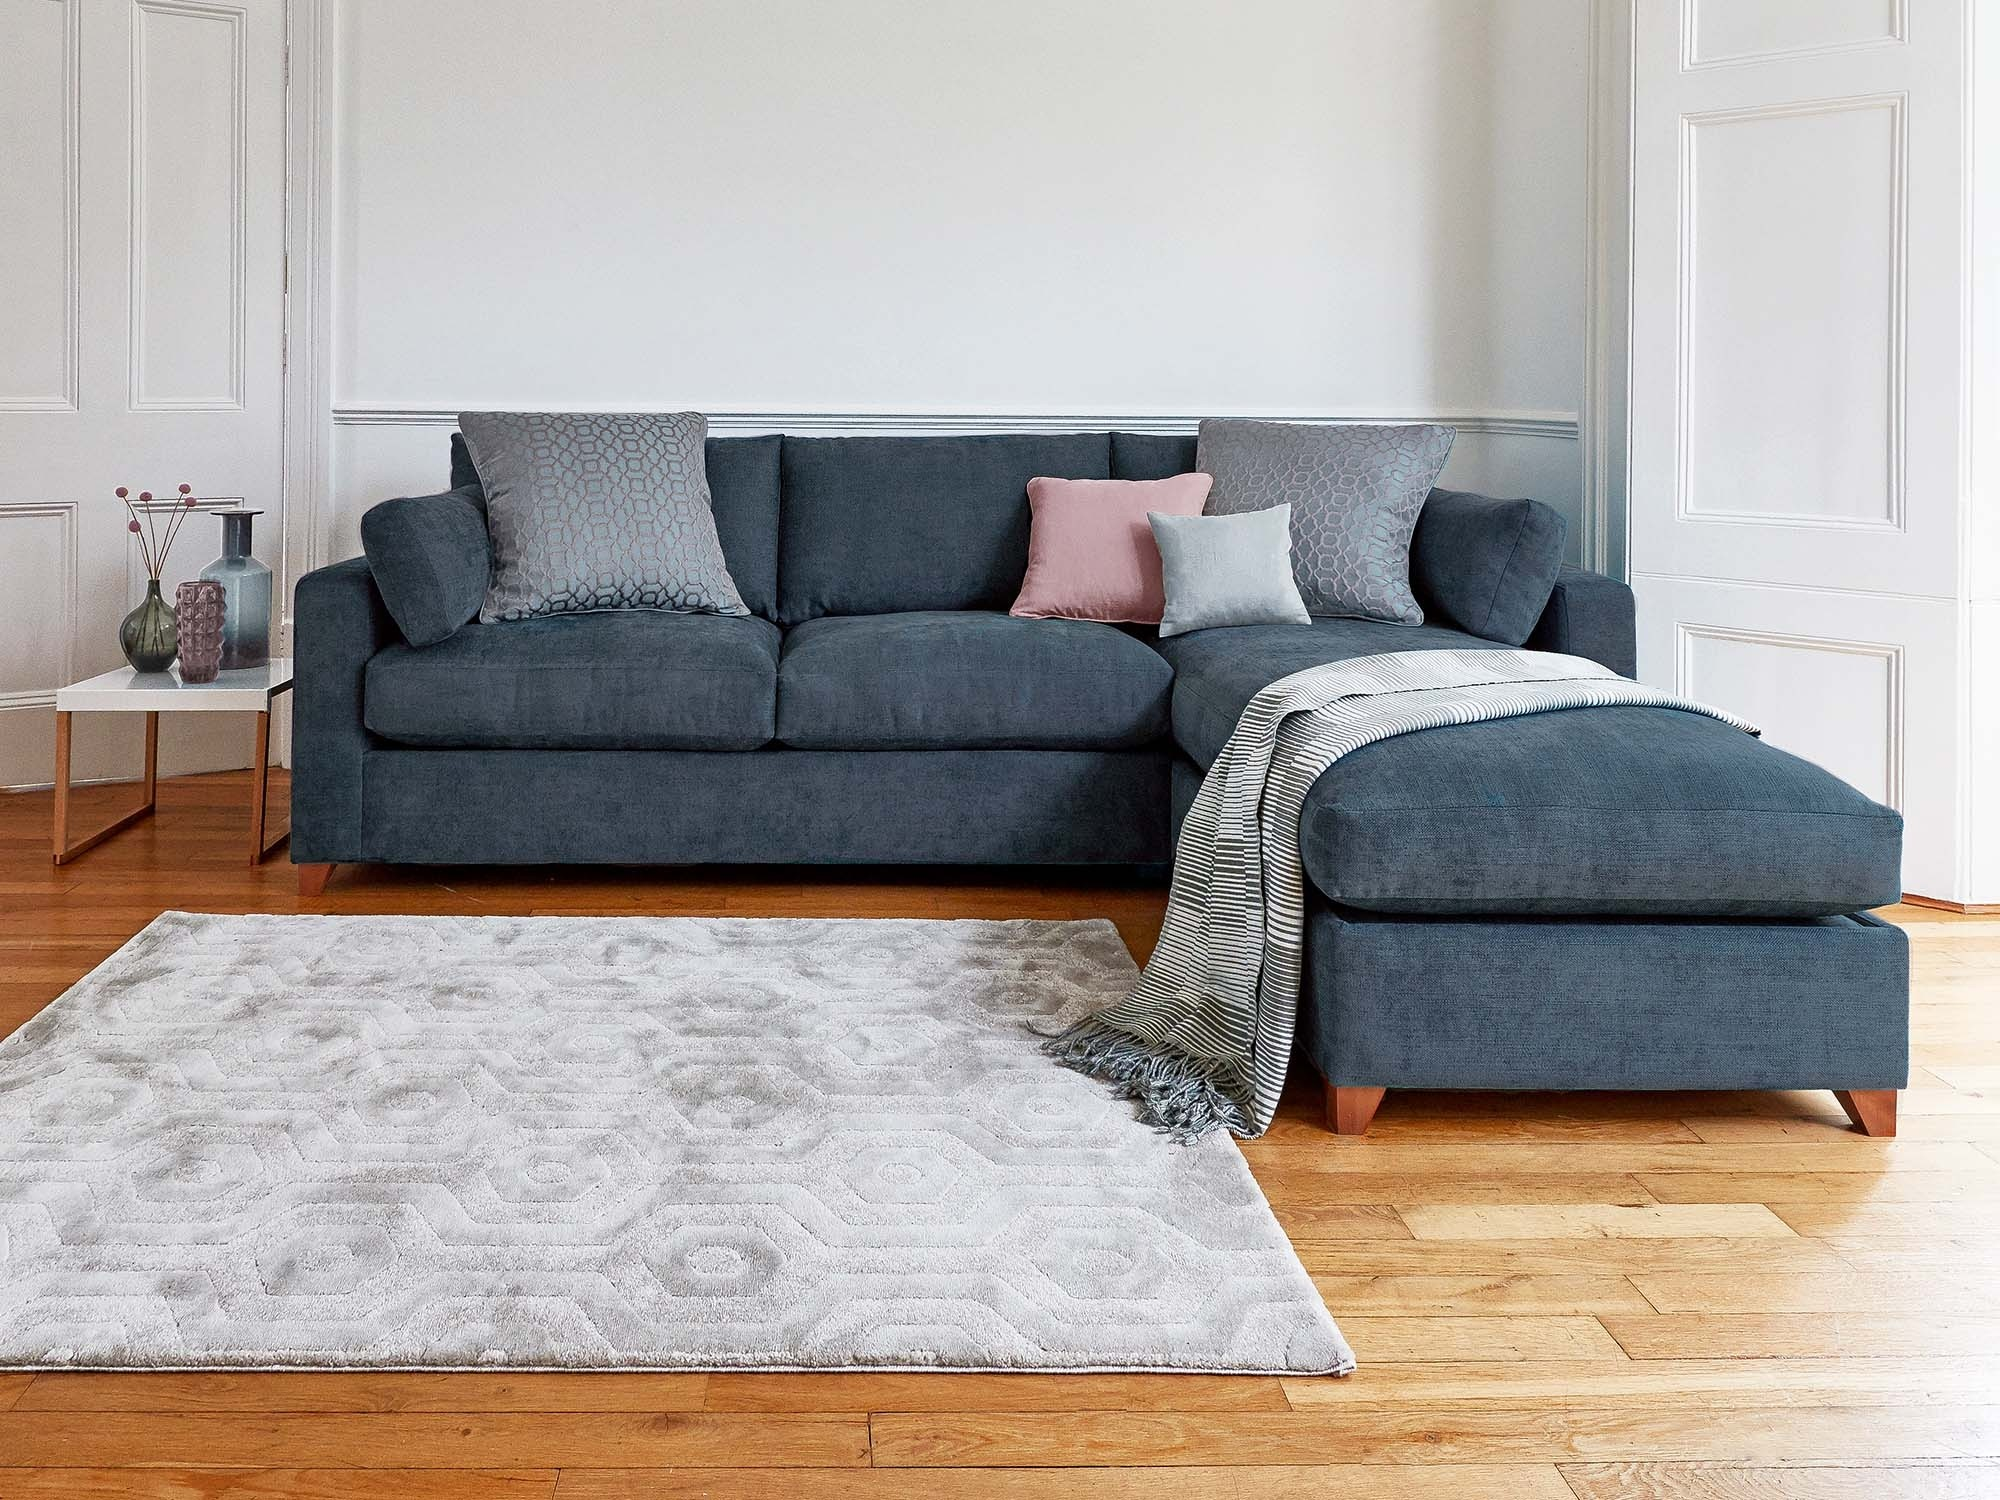 This is how I look in Stain Resistant Linen Cotton French Navy with reflex foam seat cushions with a right storage chaise